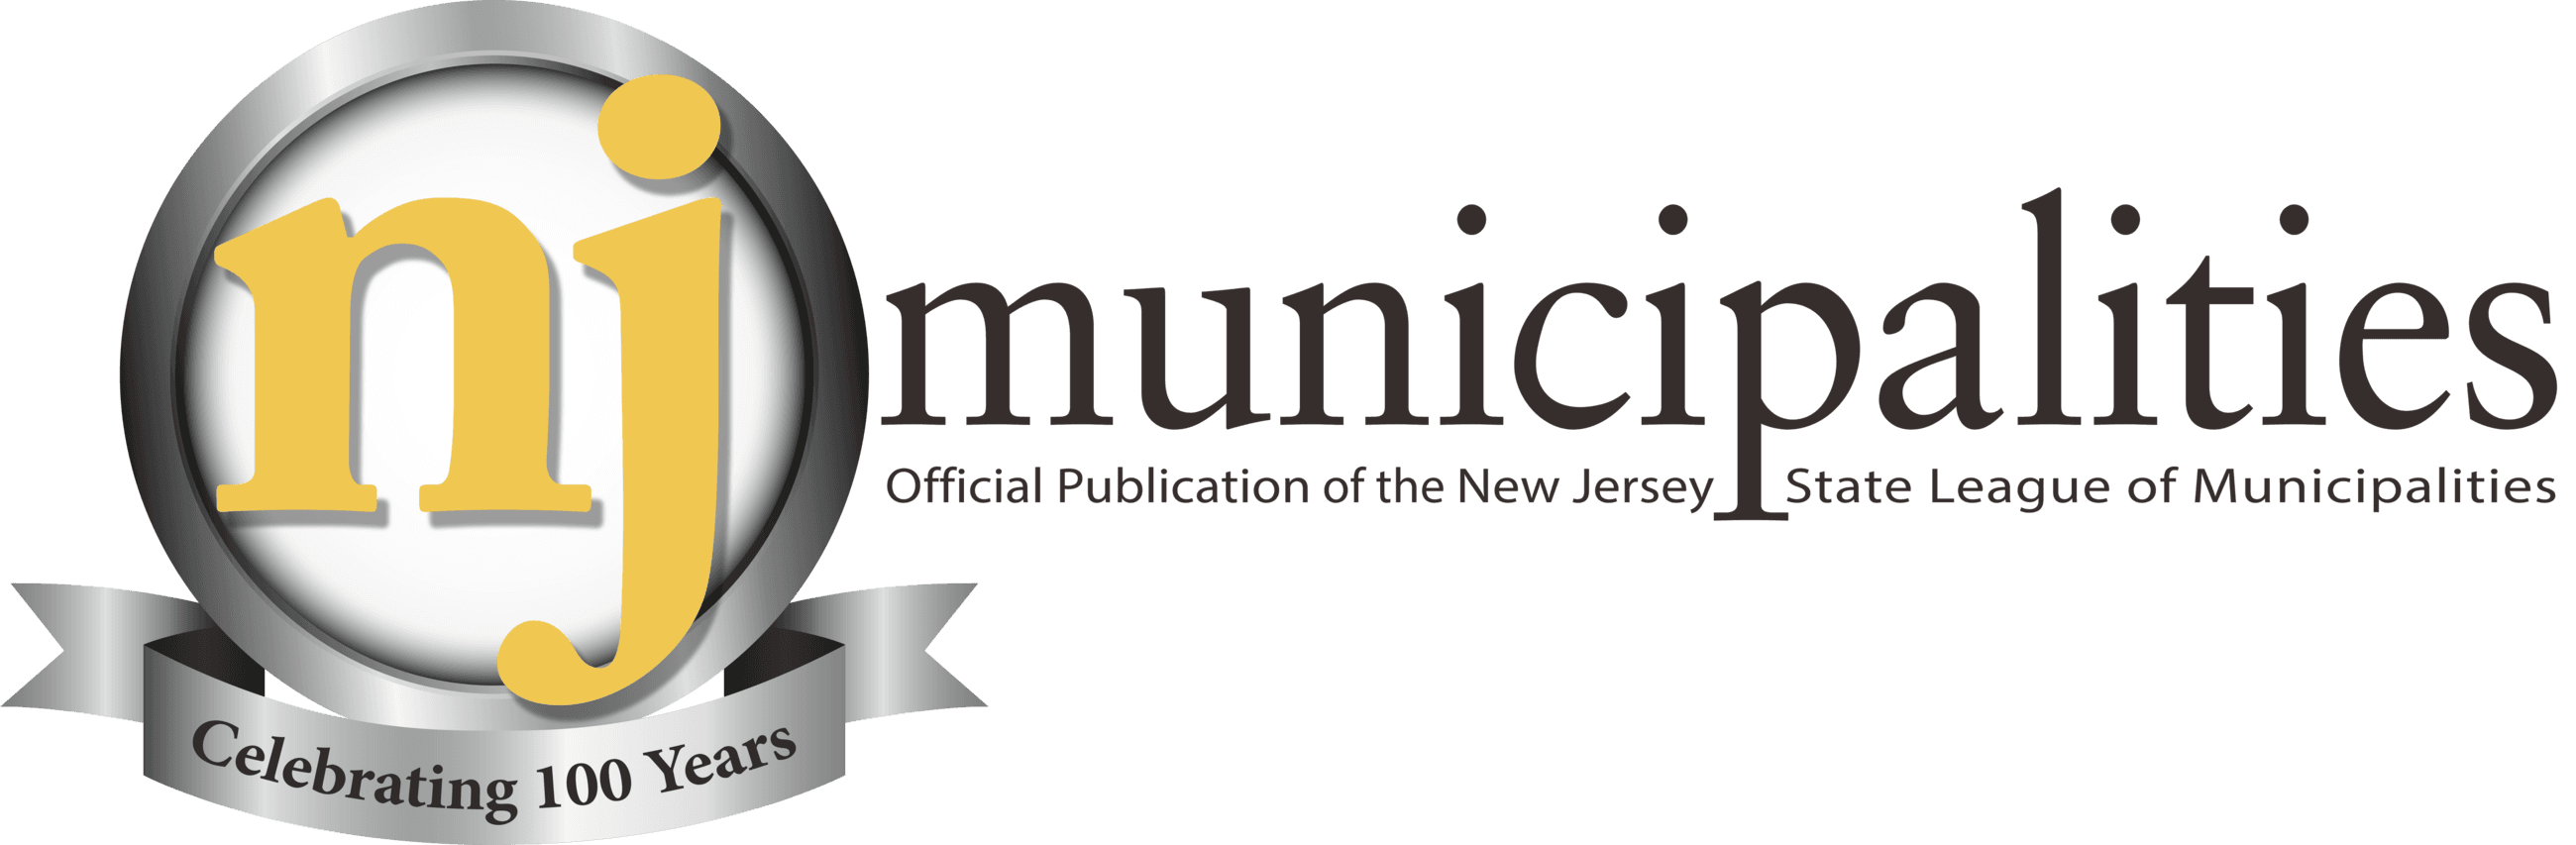 NJ Municipalities 100 Logo